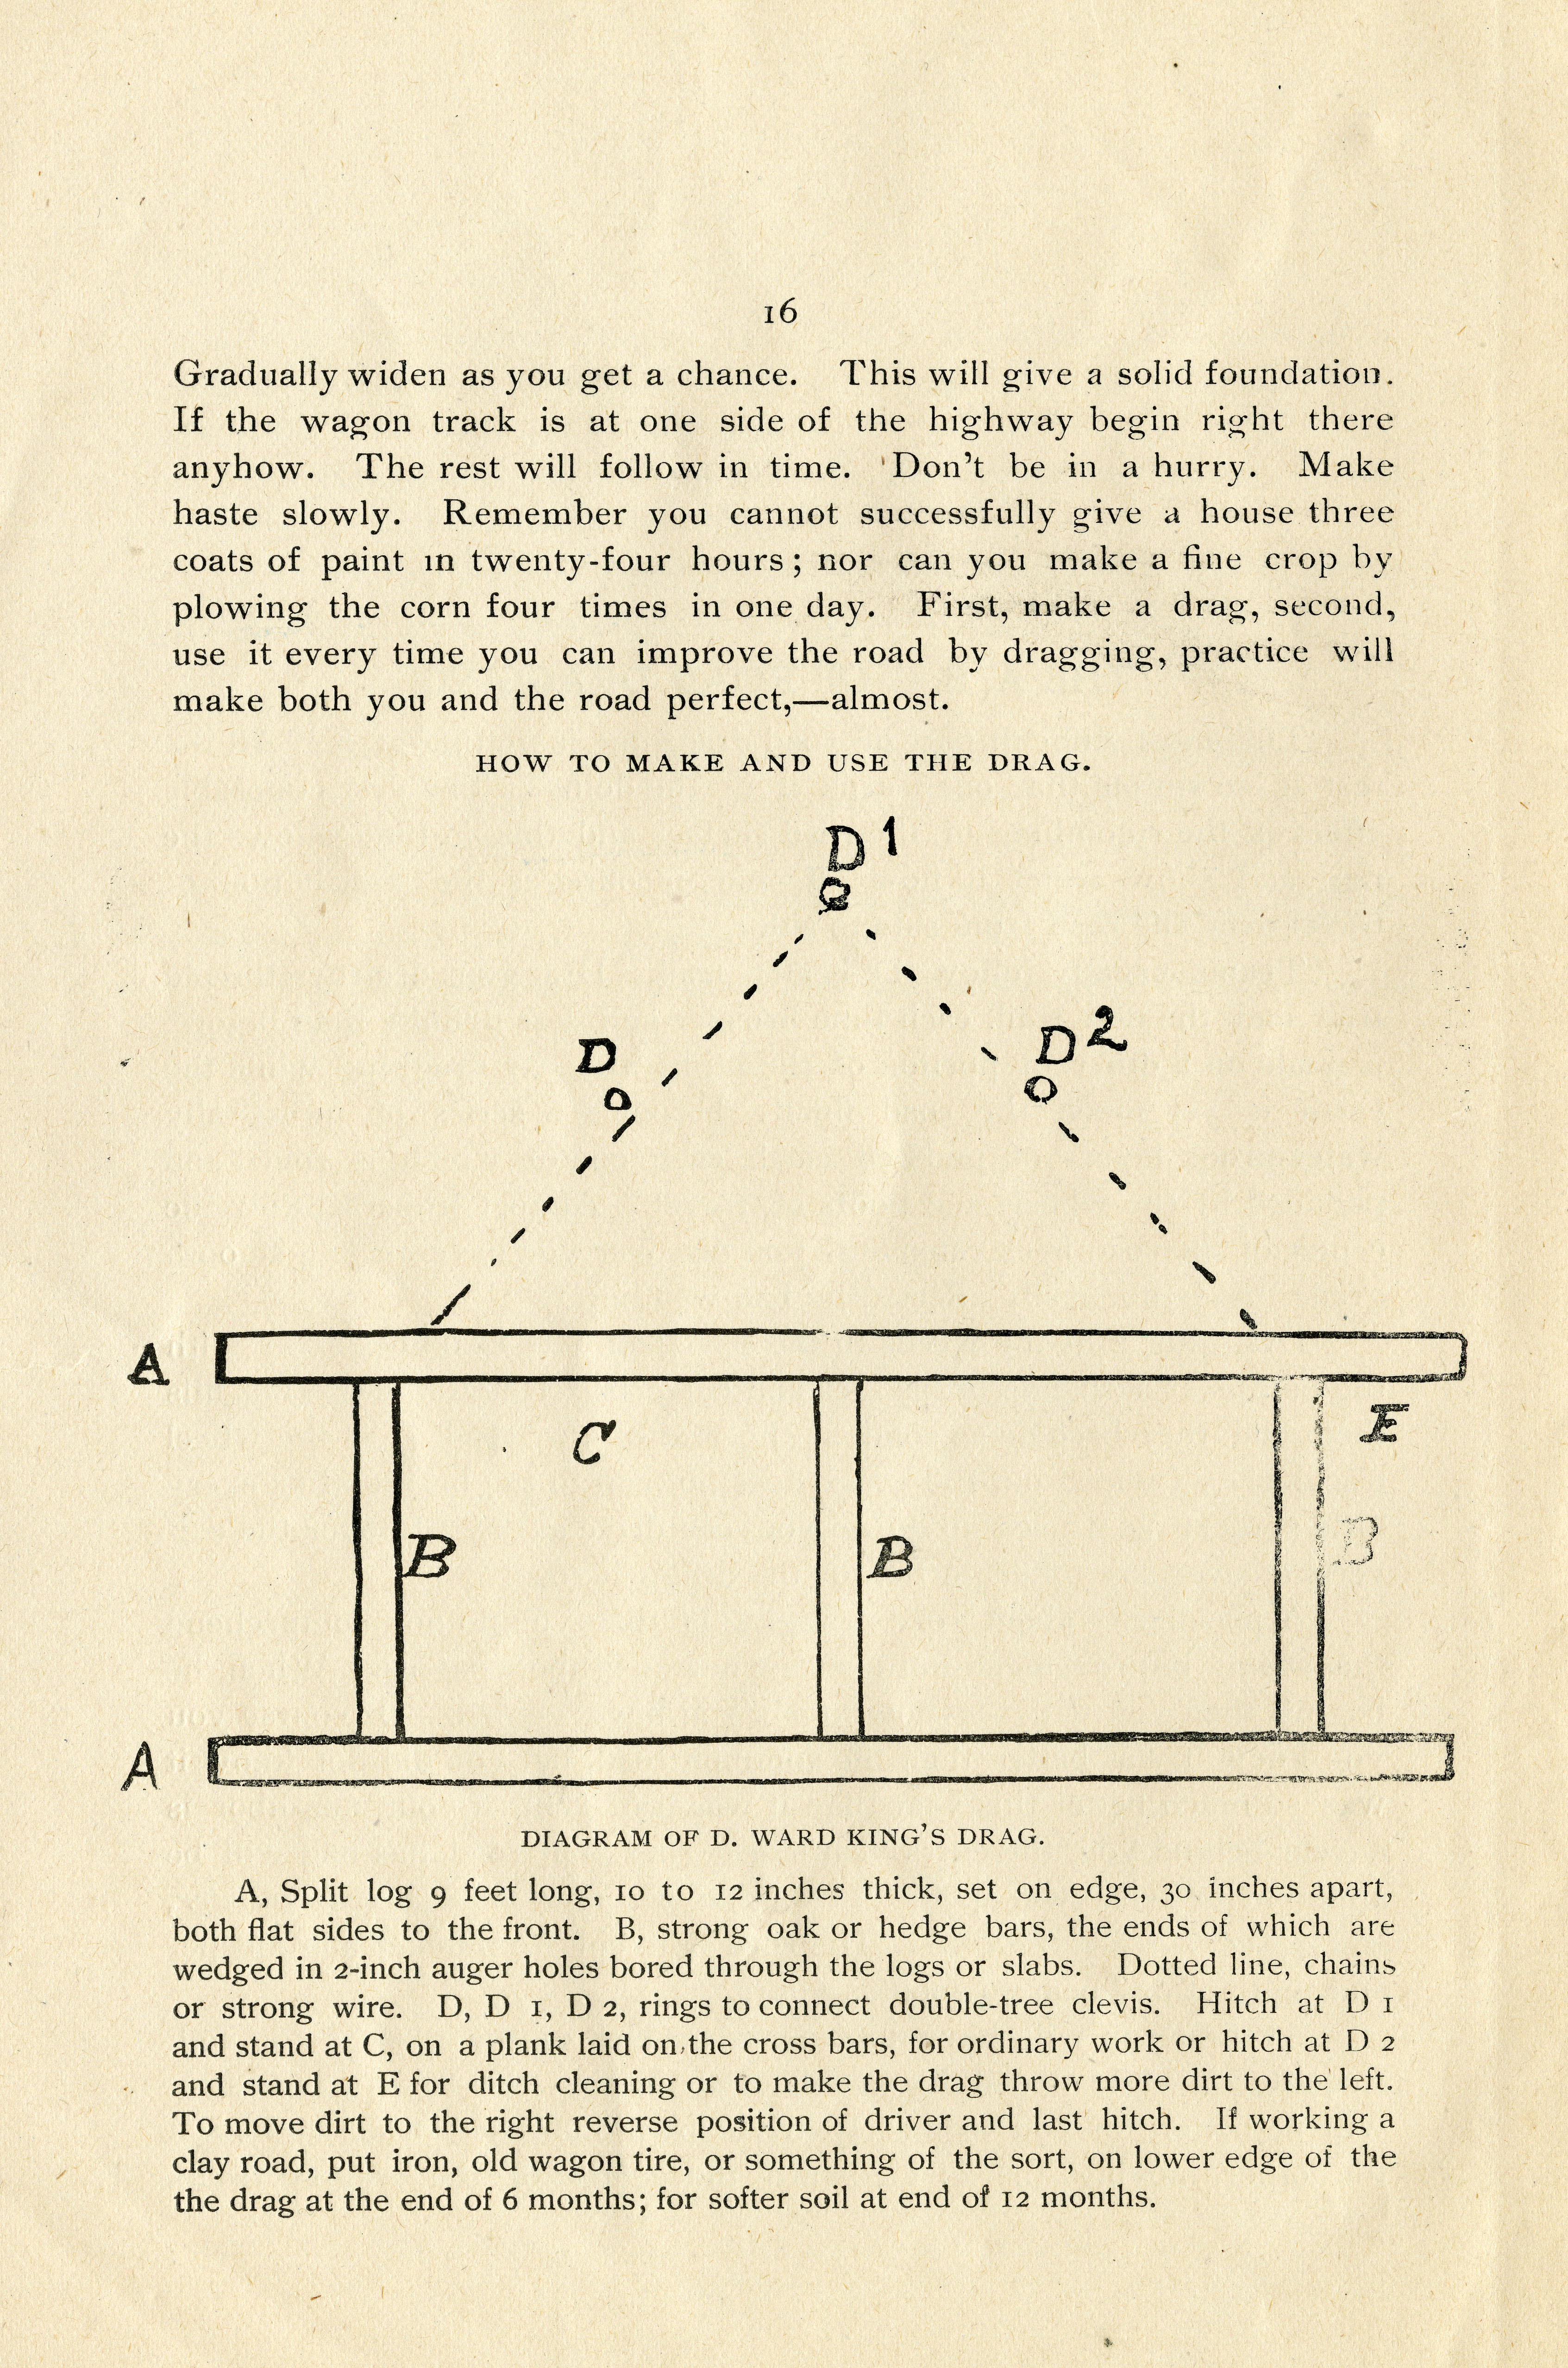 1.	Diagram of D. King Ward drag, Missouri State Board of Agriculture, Monthly Bulletin, Vol. III, August 1903, page 16. (AC1332-0000001)